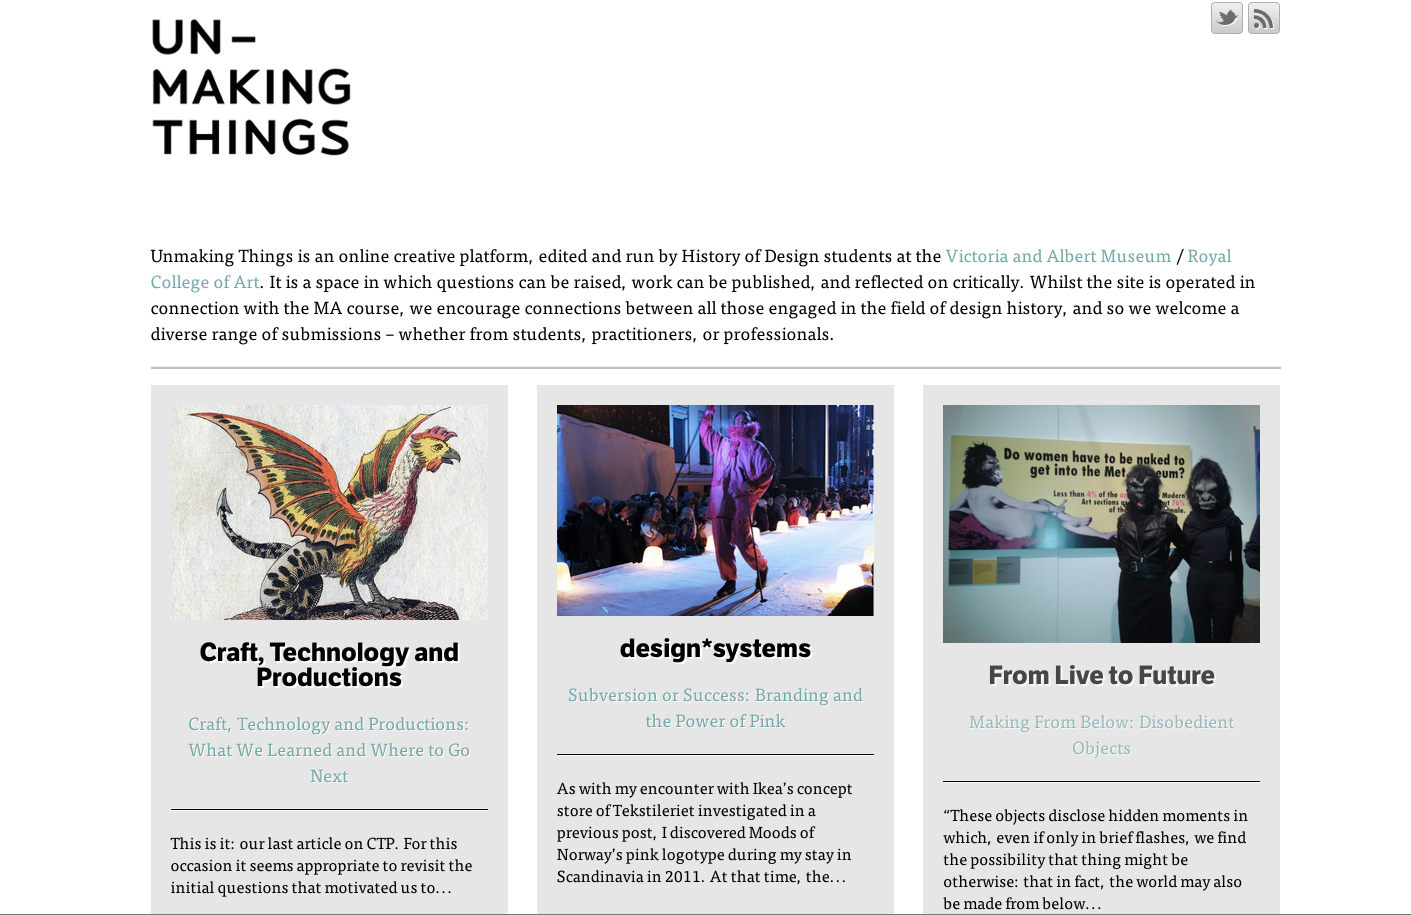 Images courtesy of Unmaking Things.